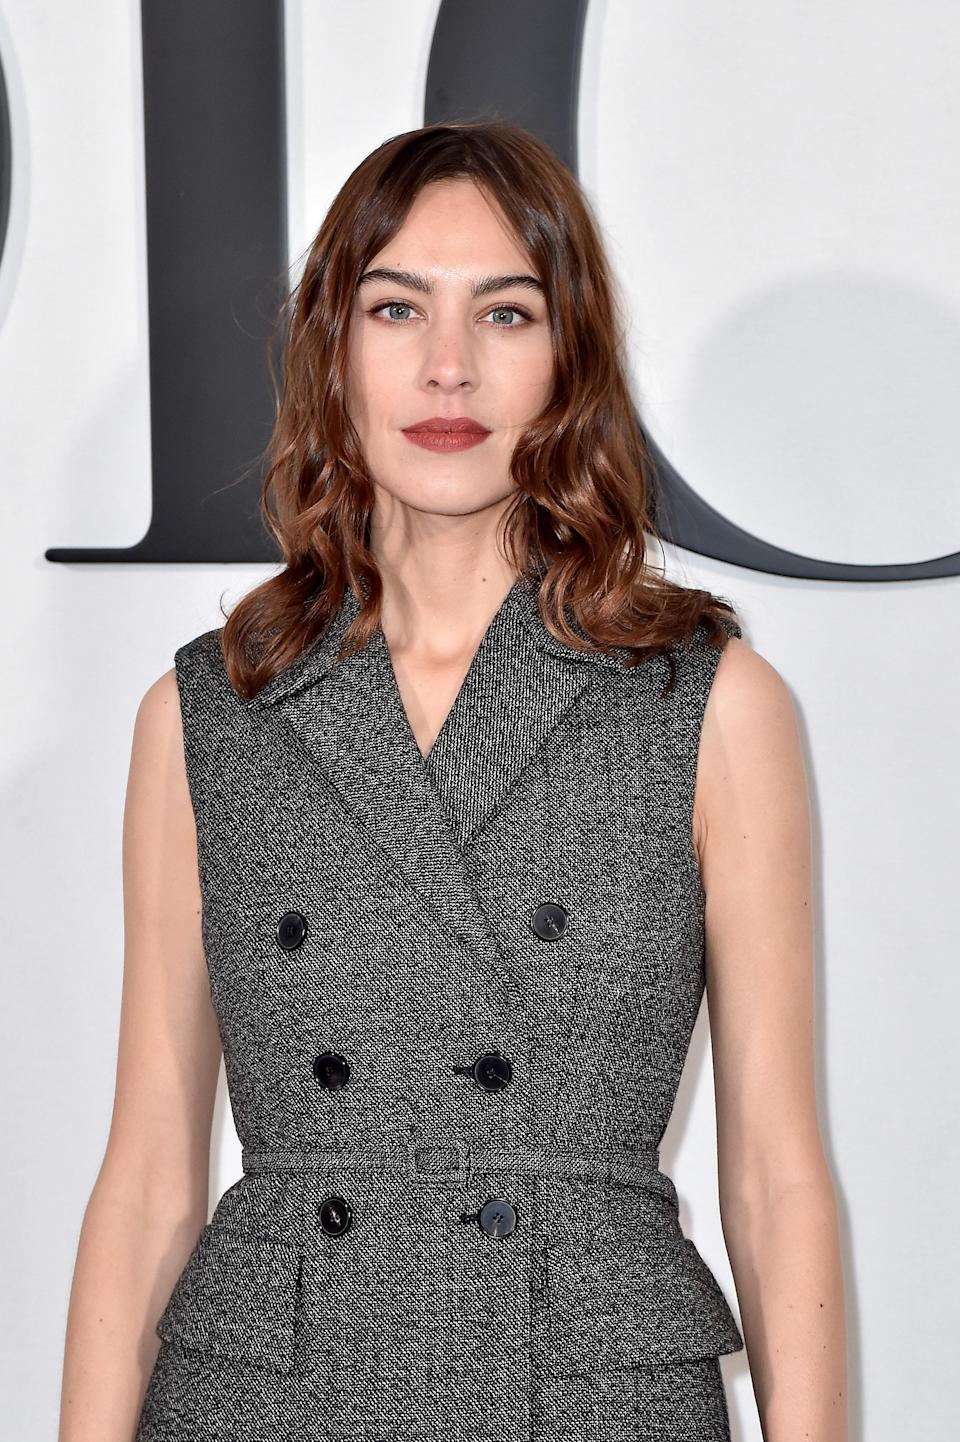 Lobs don't have to be a time commitment to style. As Alexa Chung's take on the cut shows, they also look great with minimal styling.